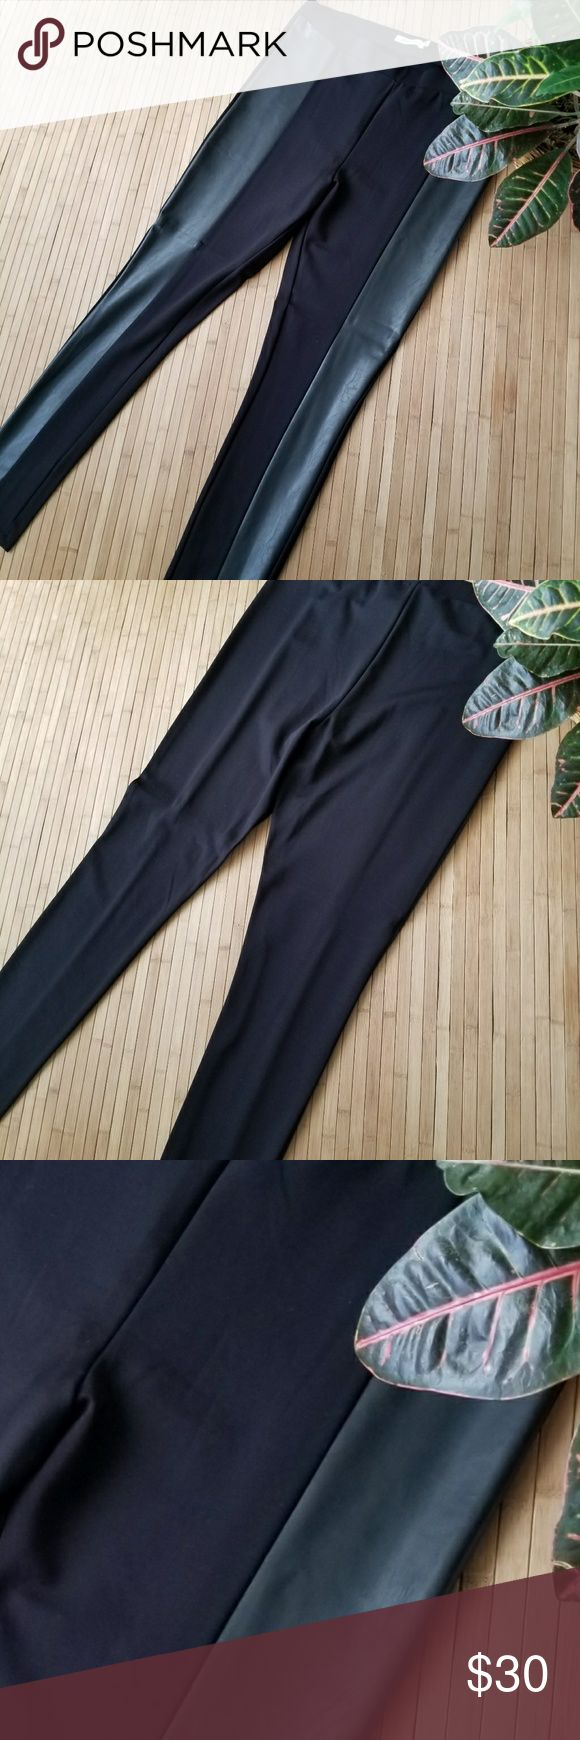 """BNWOT Black Faux Leather Panel Leggings Brand new, thick and firm black leggings with a faux leather panel down each leg. 18.5"""" unstretched waist, 12"""" front rise, 17"""" in back rise, and 31"""" inseam. JustFab Pants Leggings"""